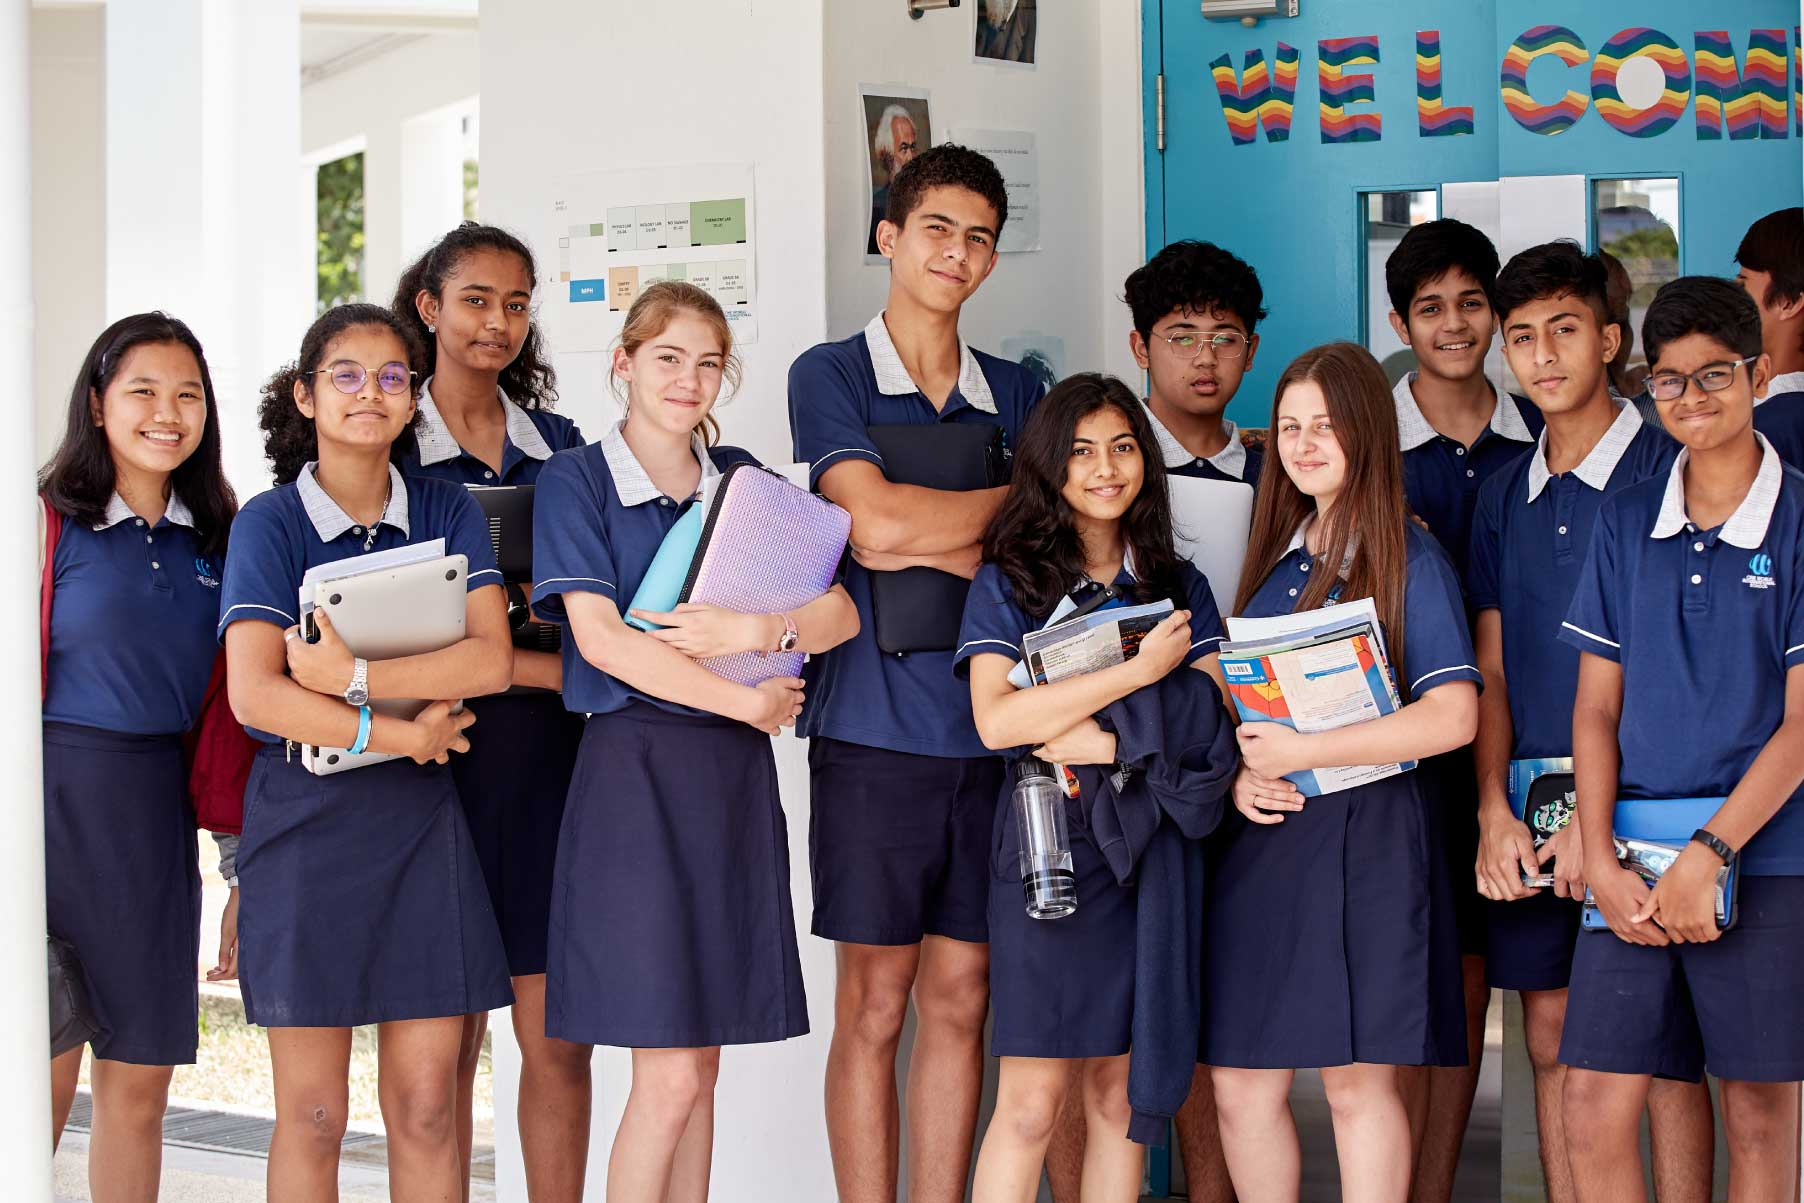 class-of-students-holding-books-posing-for-picture